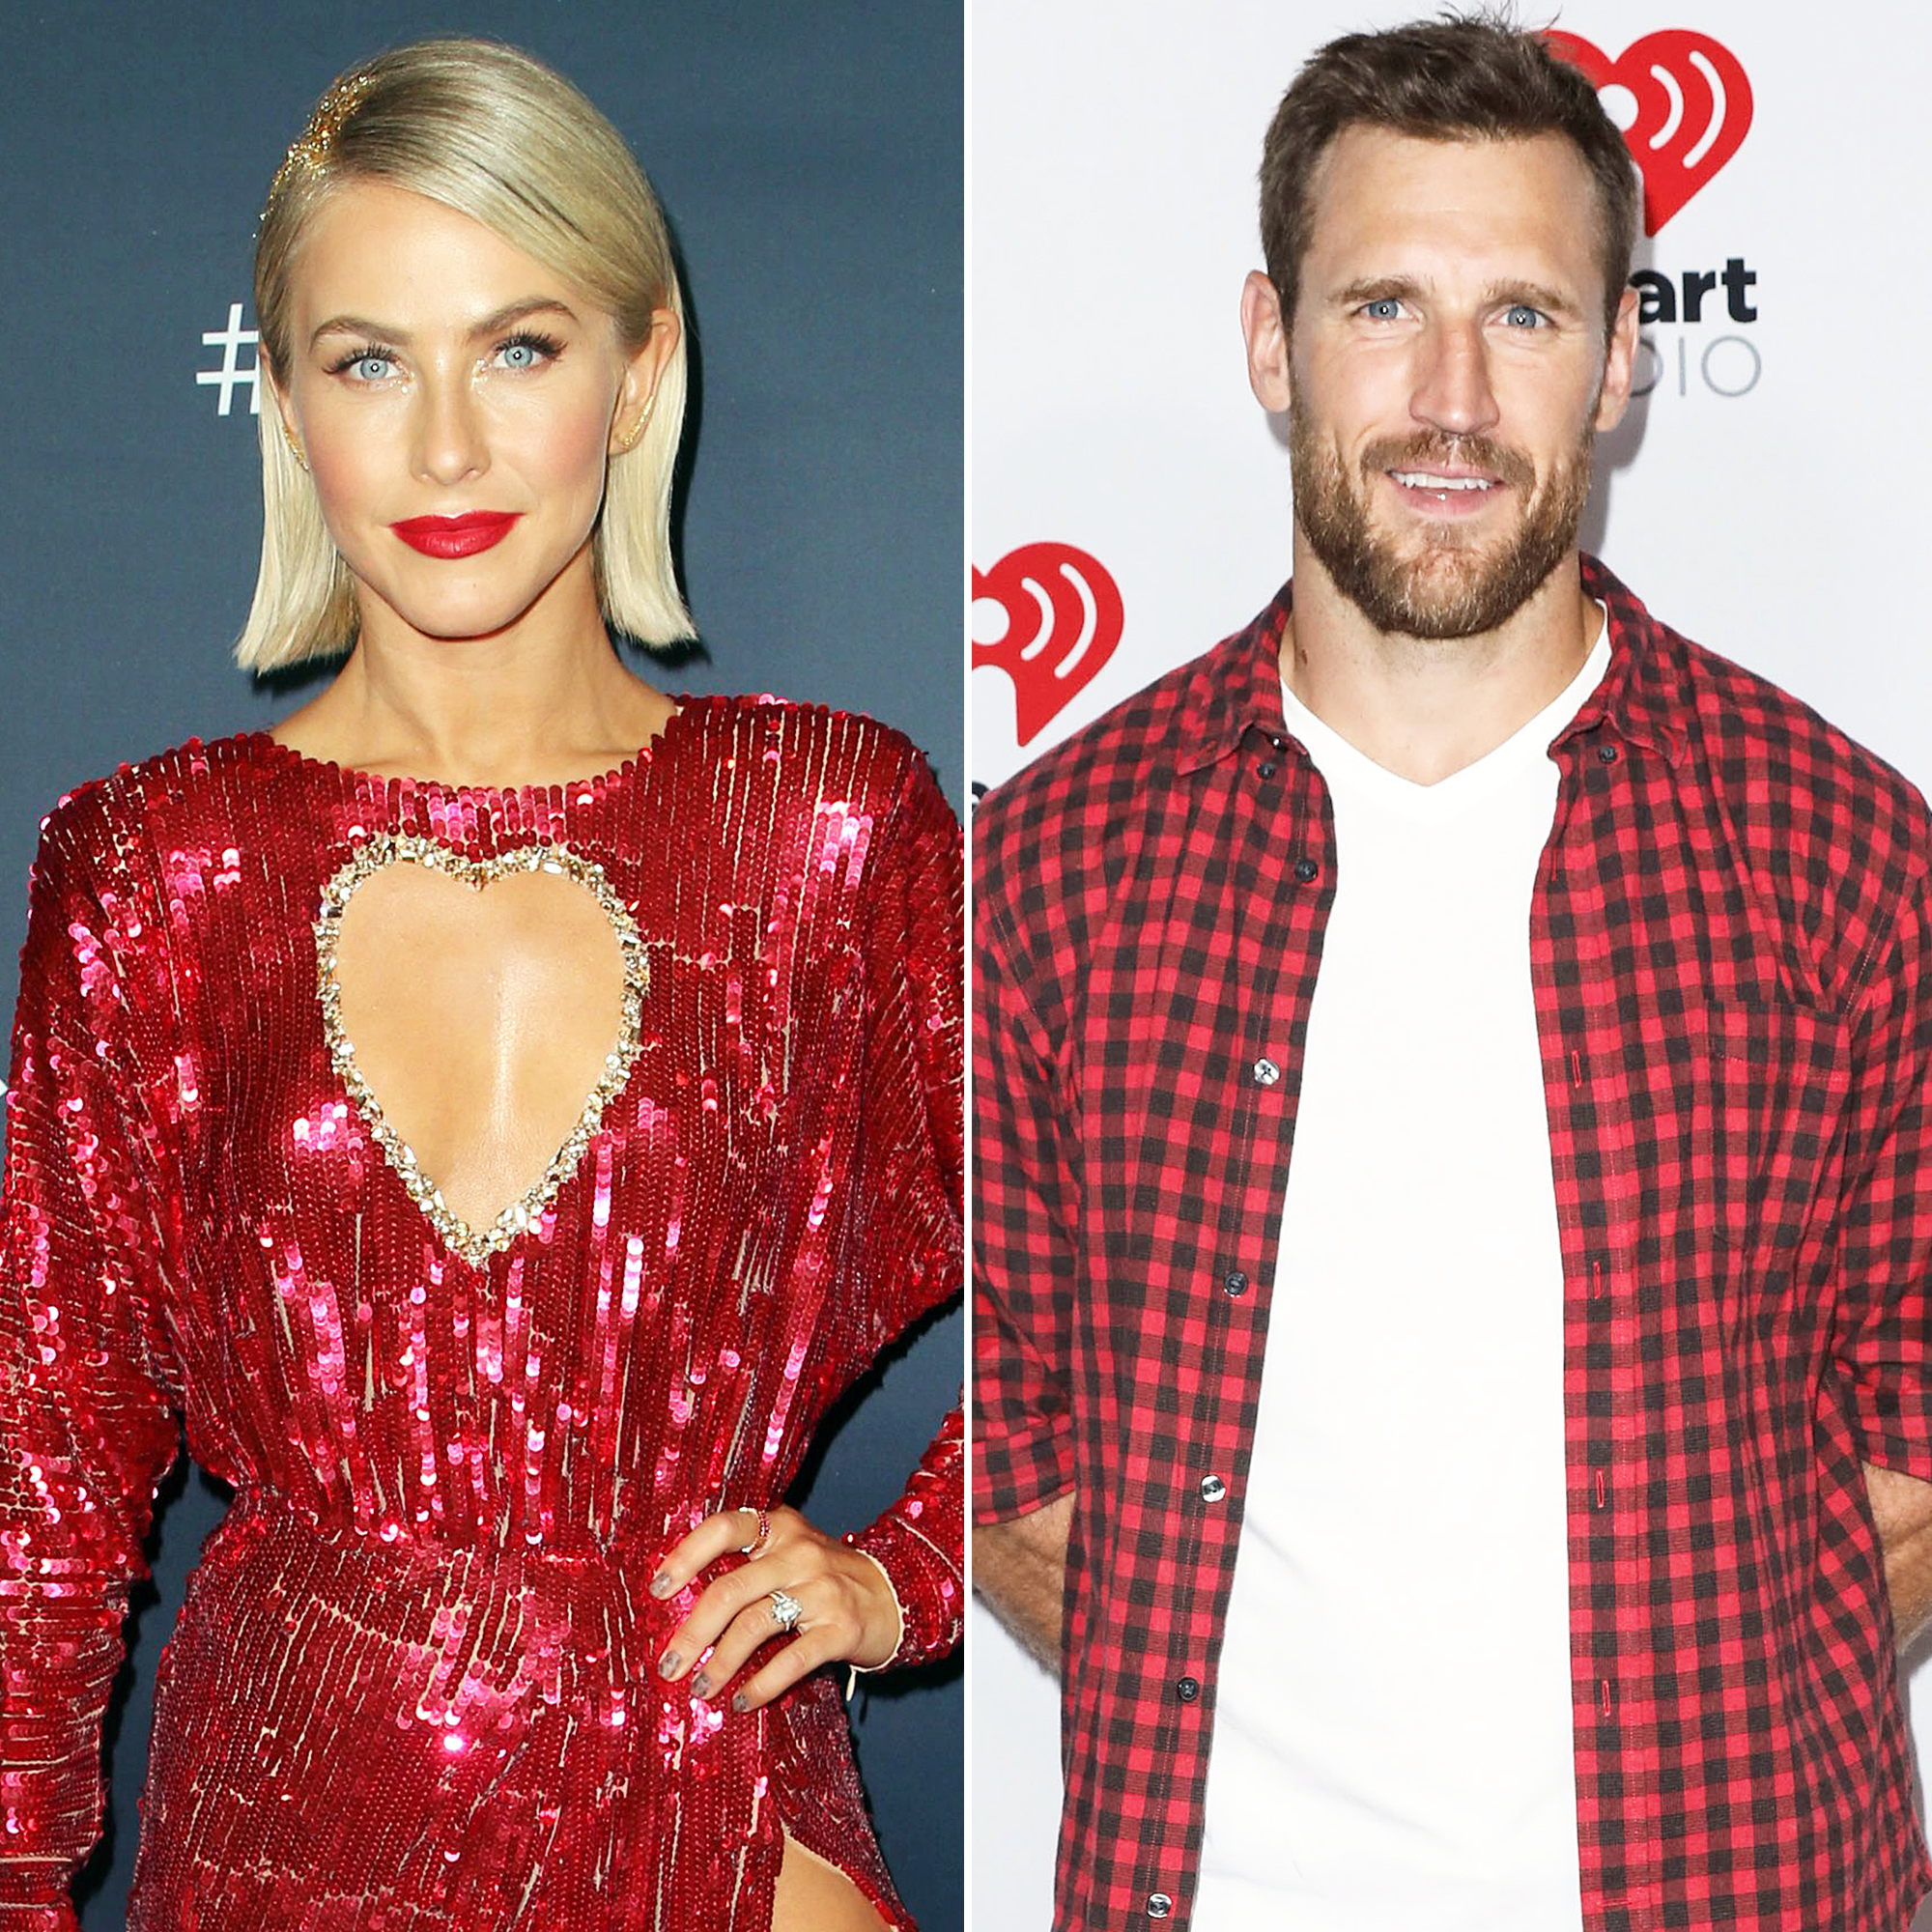 <div>Julianne Hough and Brooks Laich 'Haven't Been Speaking Much' Amid Divorce</div>